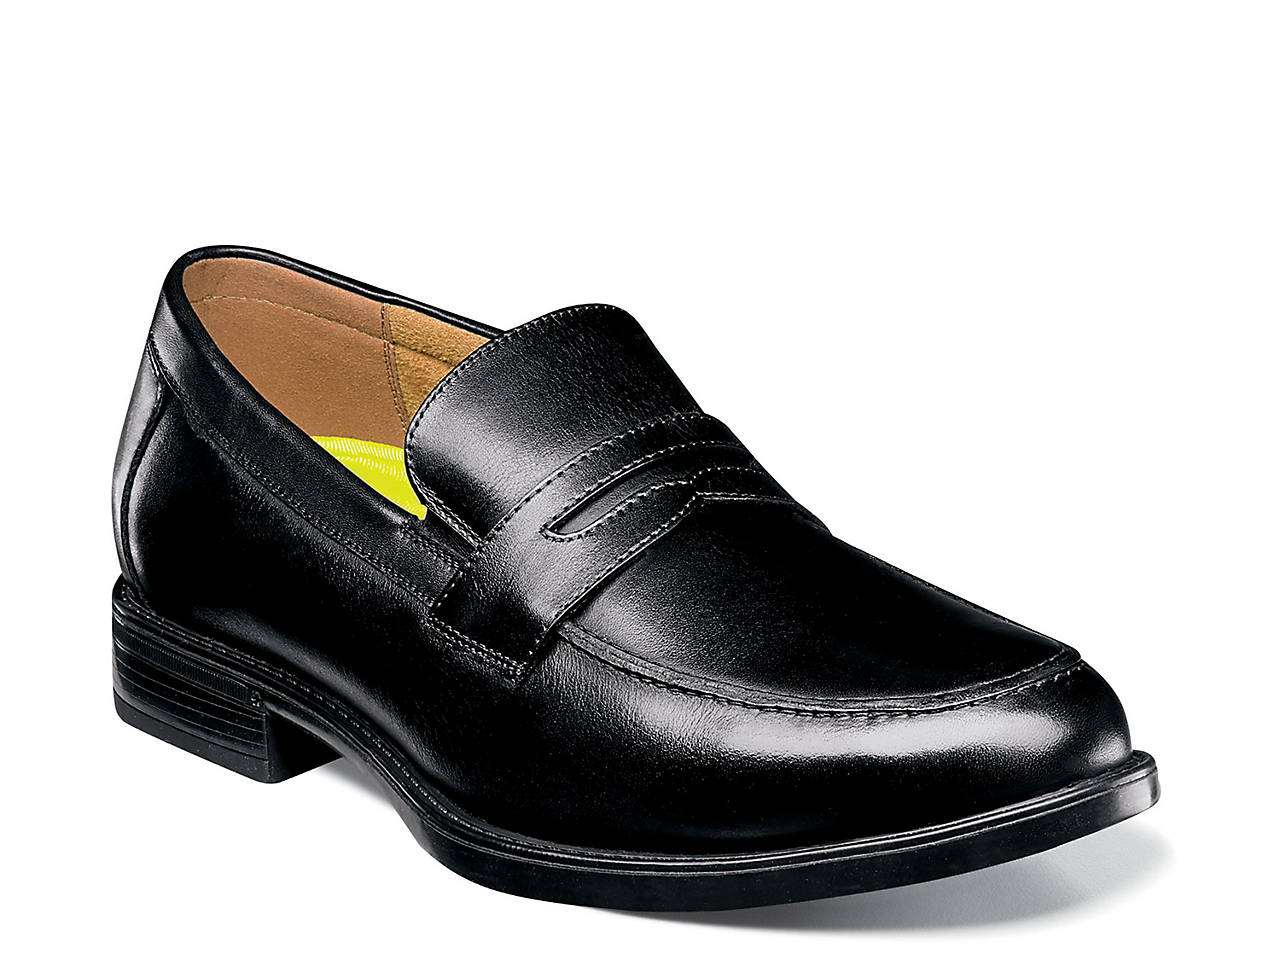 Midtown Penny Loafer by Florsheim